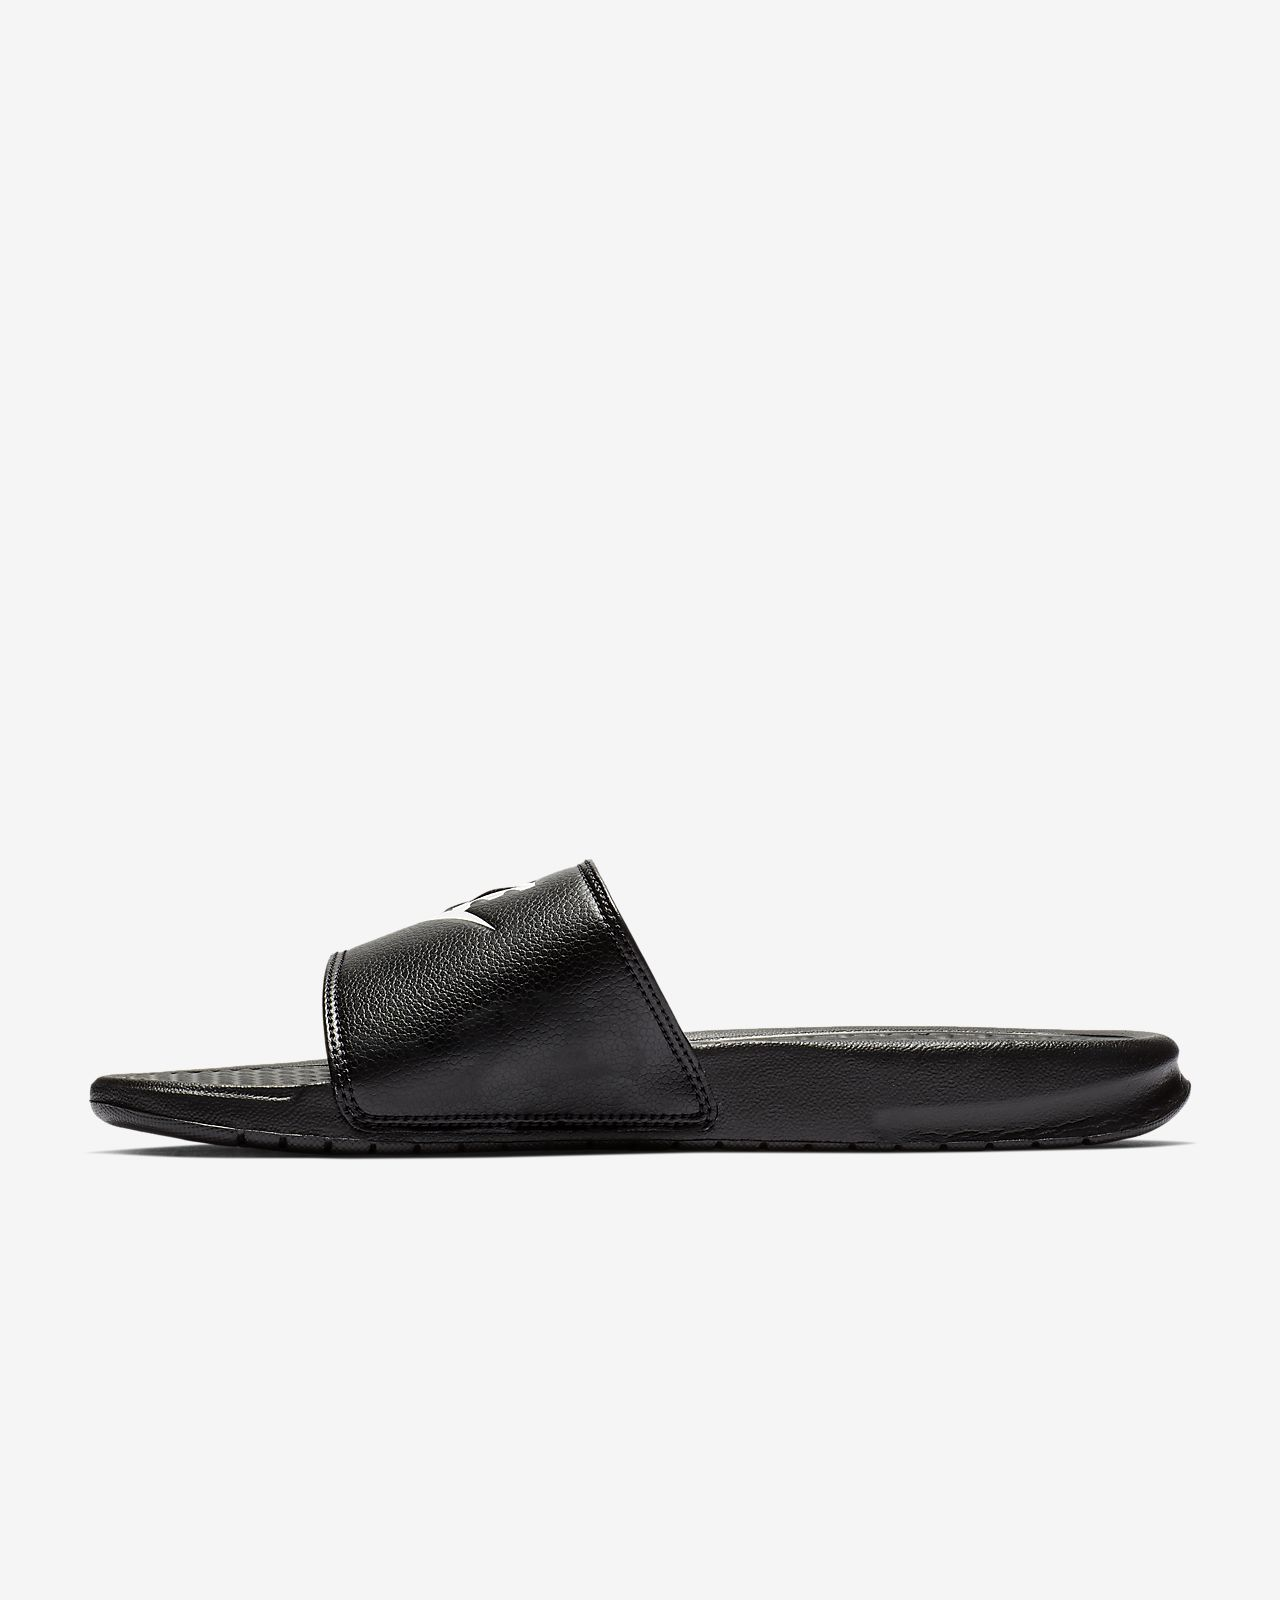 abf1b1e90 Low Resolution Nike Benassi Slide Nike Benassi Slide